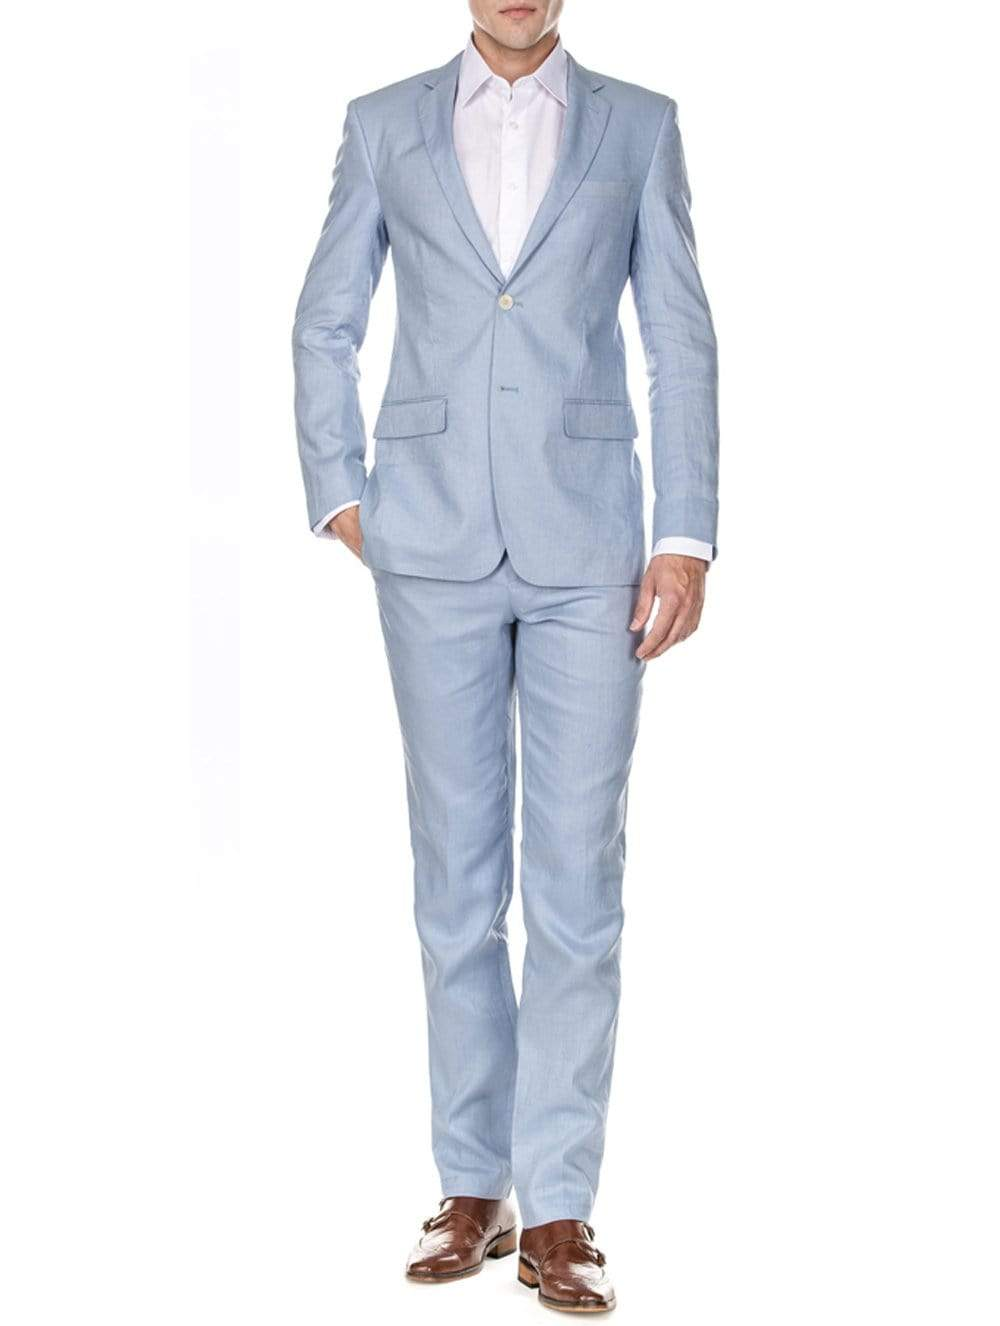 DAILY HAUTE Men's Suits LIGHT BLUE / 36Rx30W Gino Vitale Men's Slim Fit Pure Linen 2pc Suits